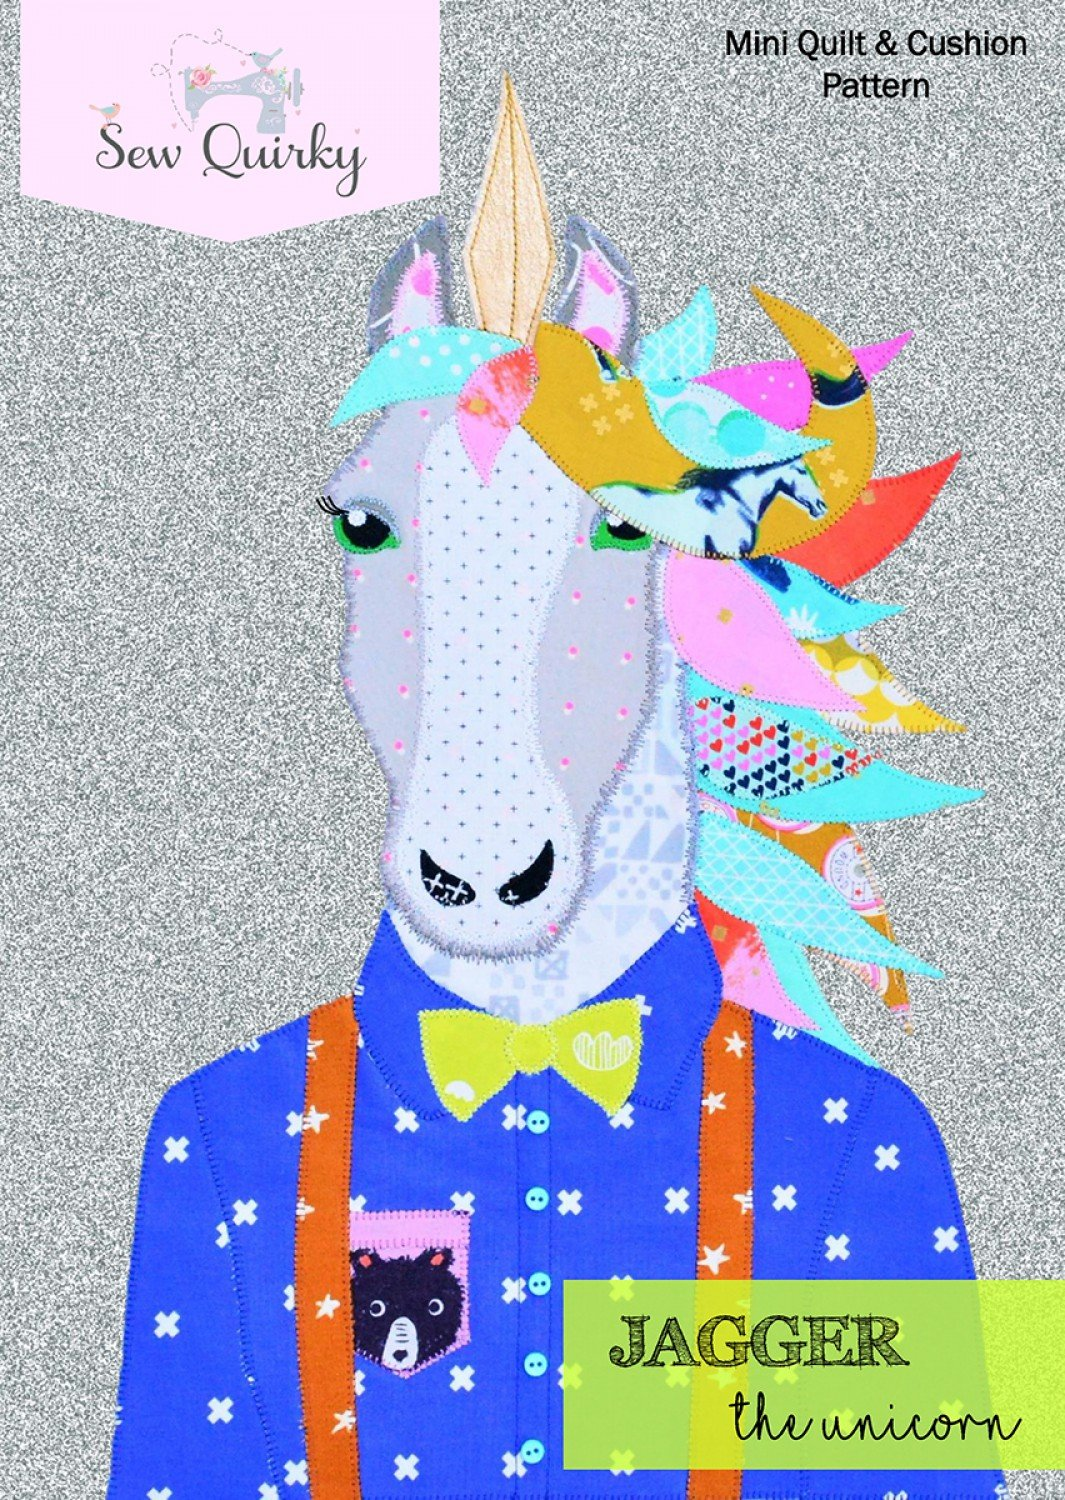 Sew Quirky - Jagger the Unicorn